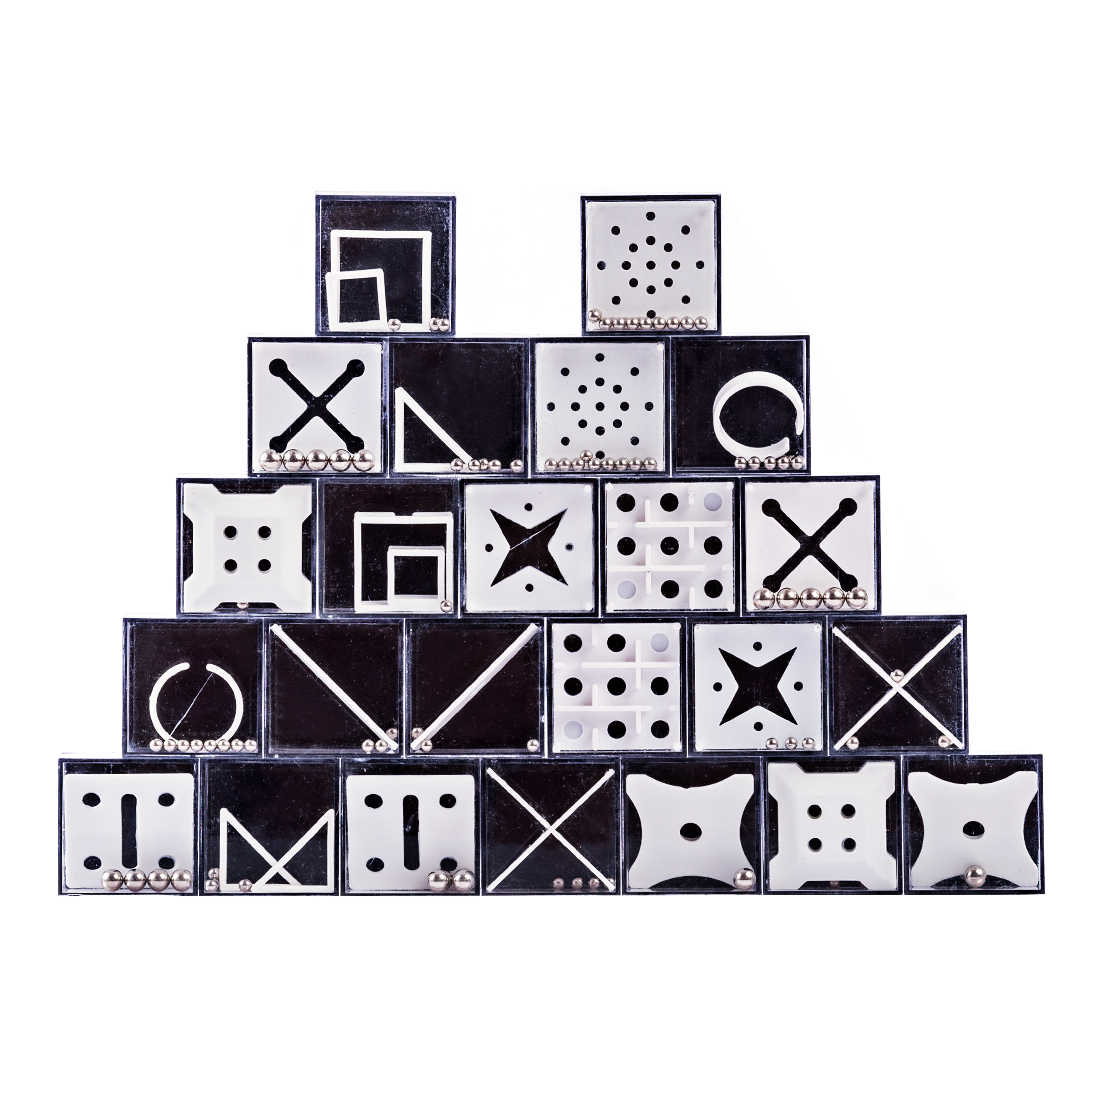 24Pcs Balance Maze Game Puzzle Boxes With Steel Ball Brain Teaser Educational Toys Gift Decompression Toy With For Kids Adults